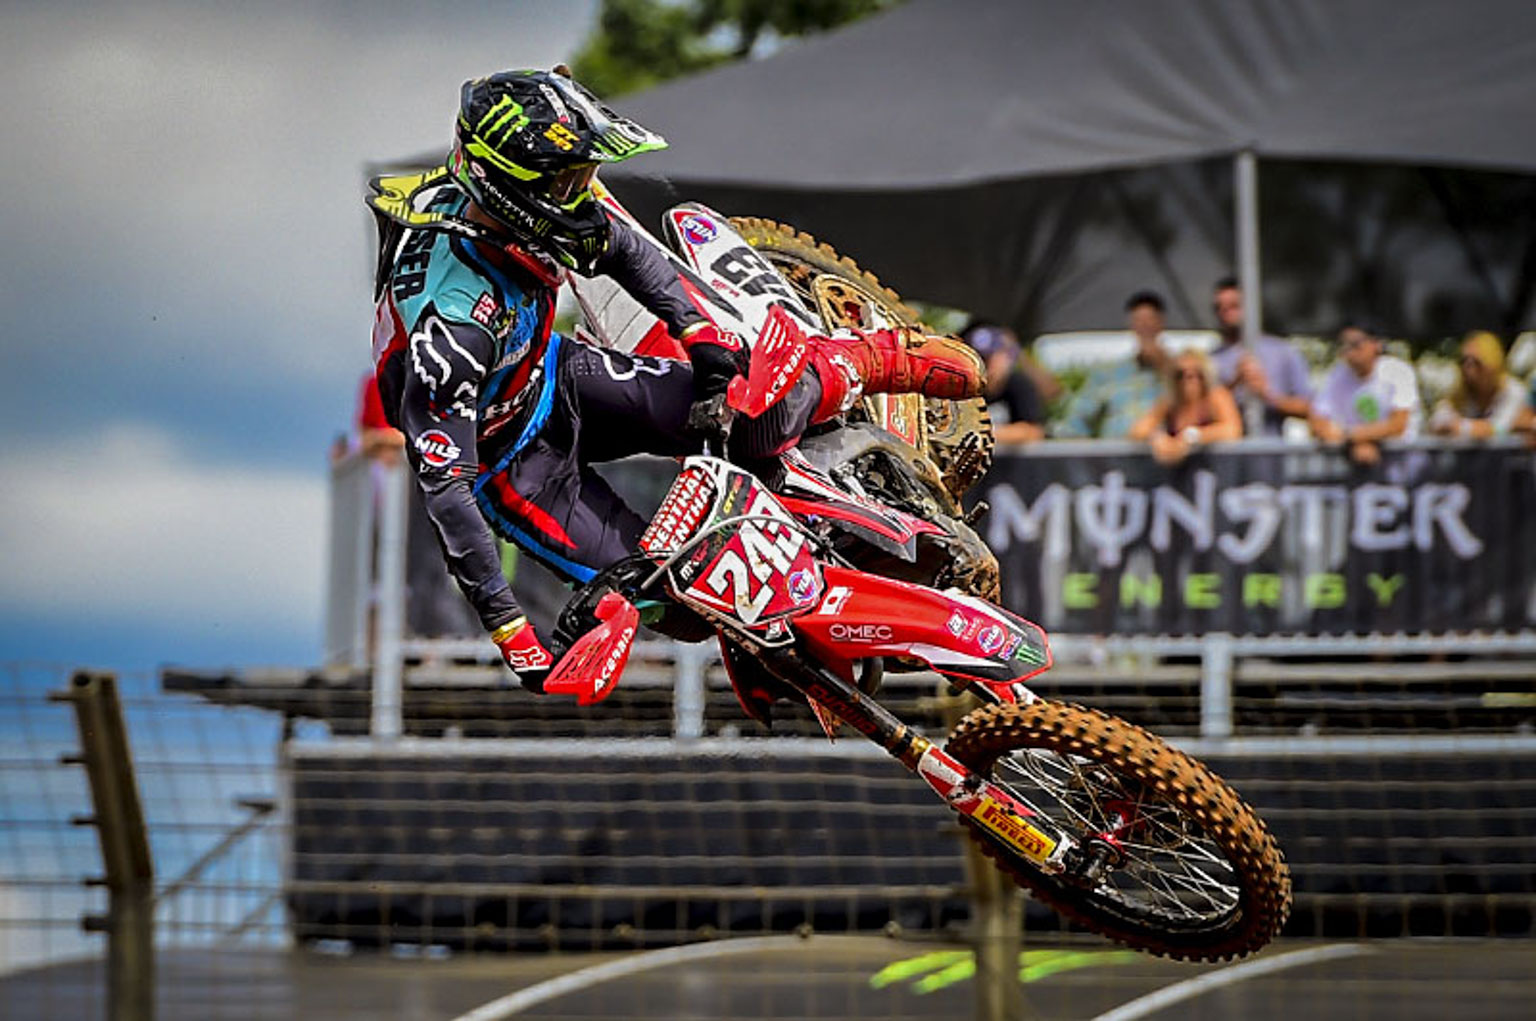 World champ Tim Gajser is back from injury and keen to win